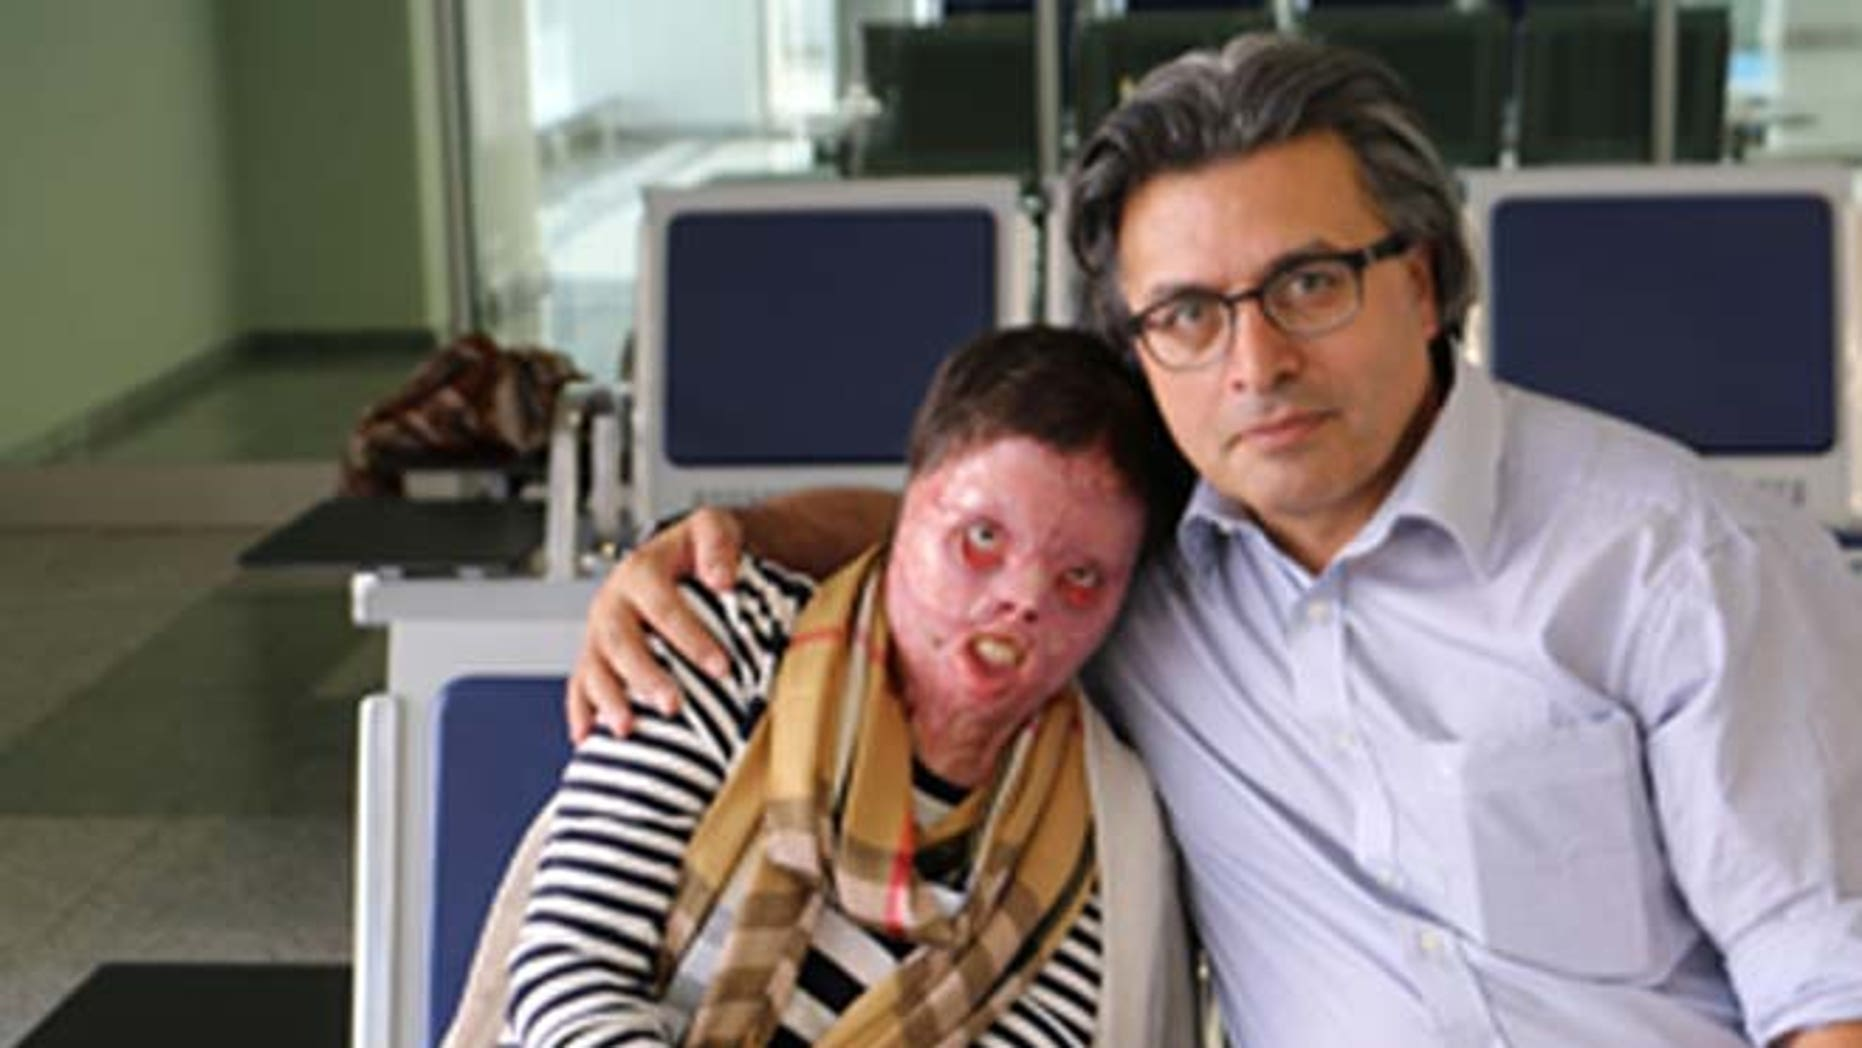 Yasmin, who set herself on fire to avoid a brutal attack by ISIS, is shown with Dr. Jan Kizihan.